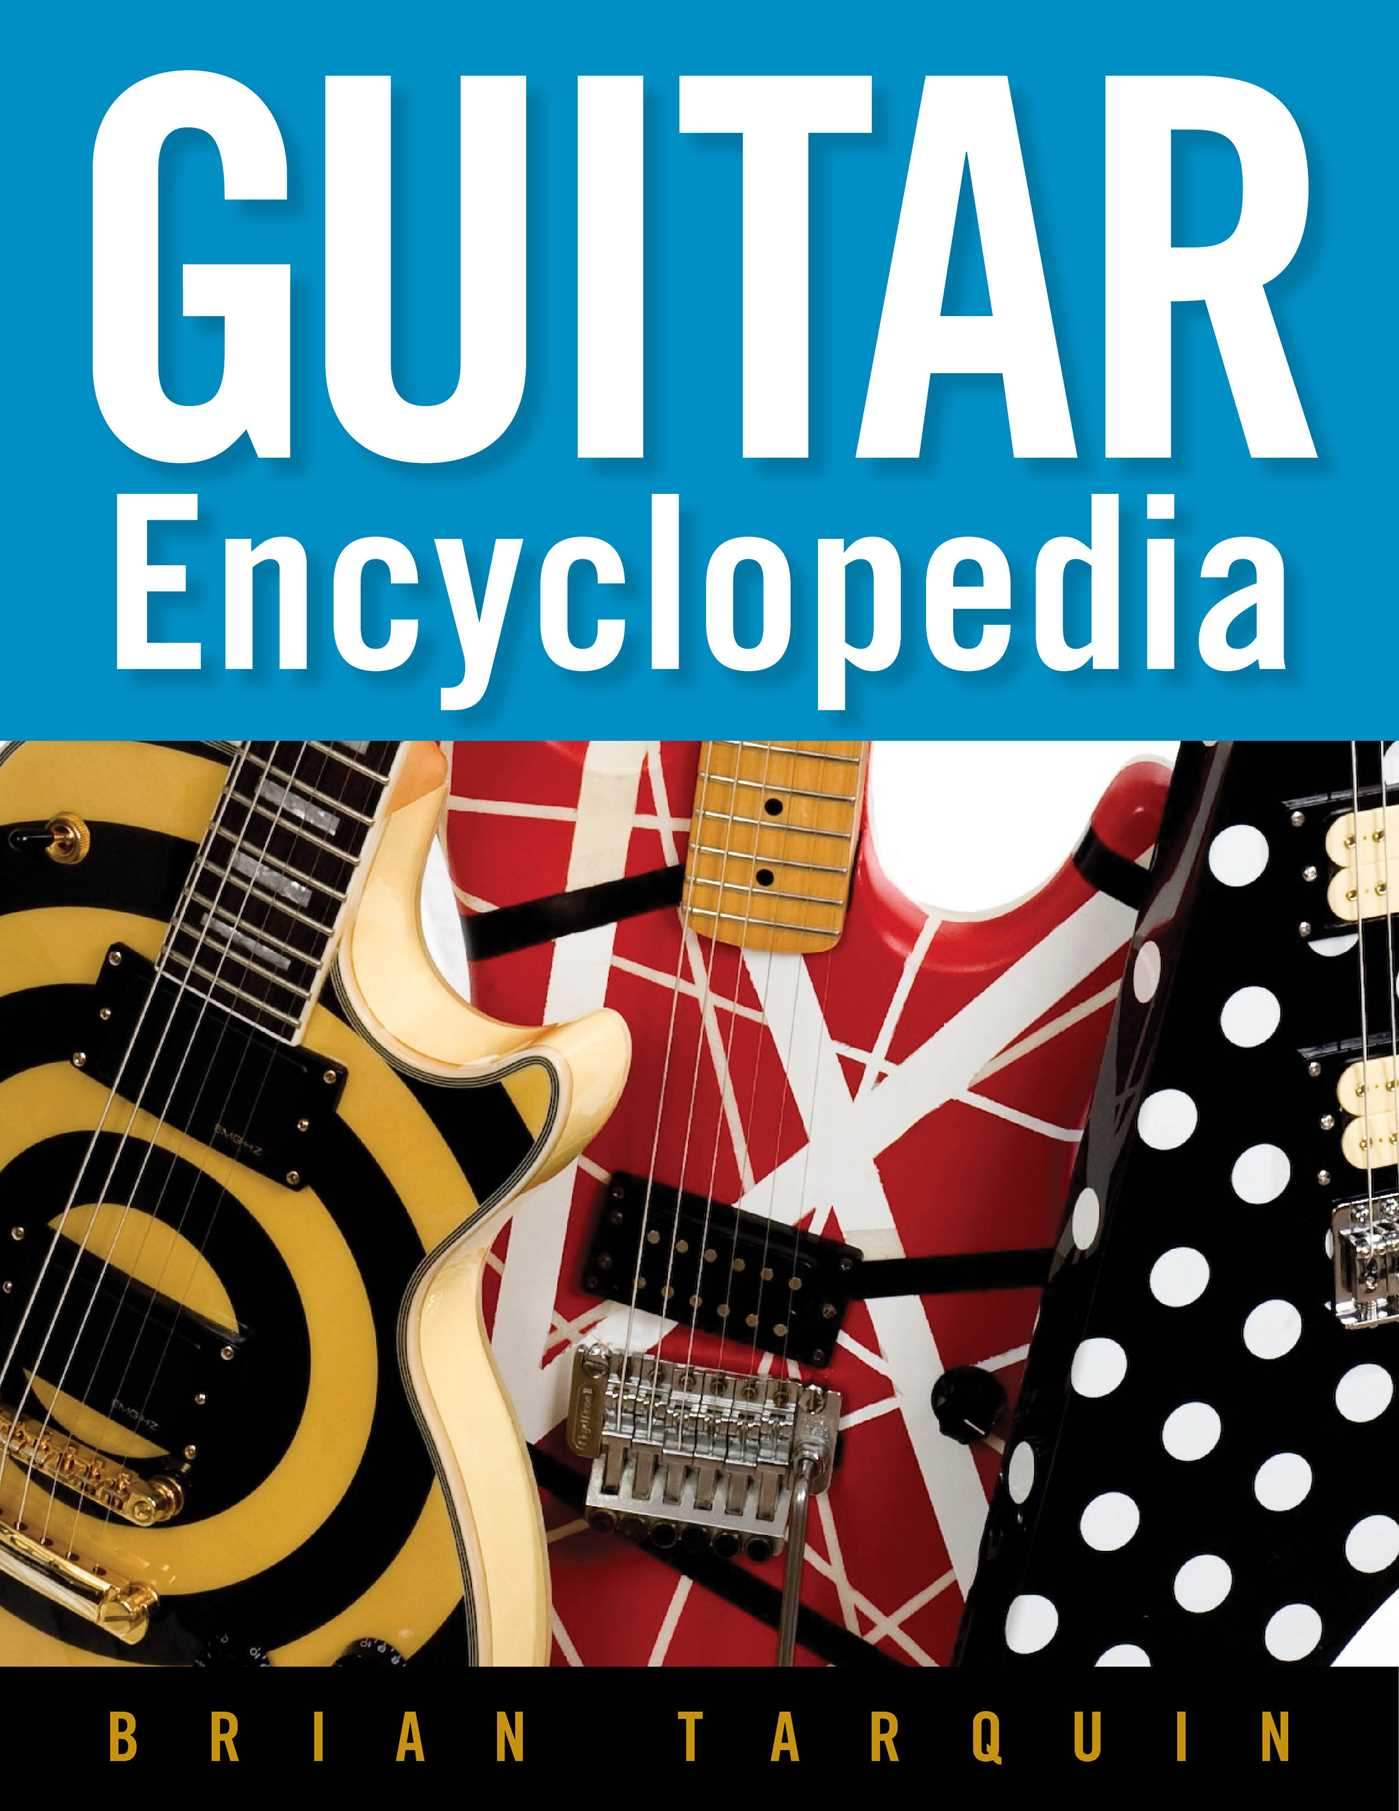 hight resolution of book cover image jpg guitar encyclopedia